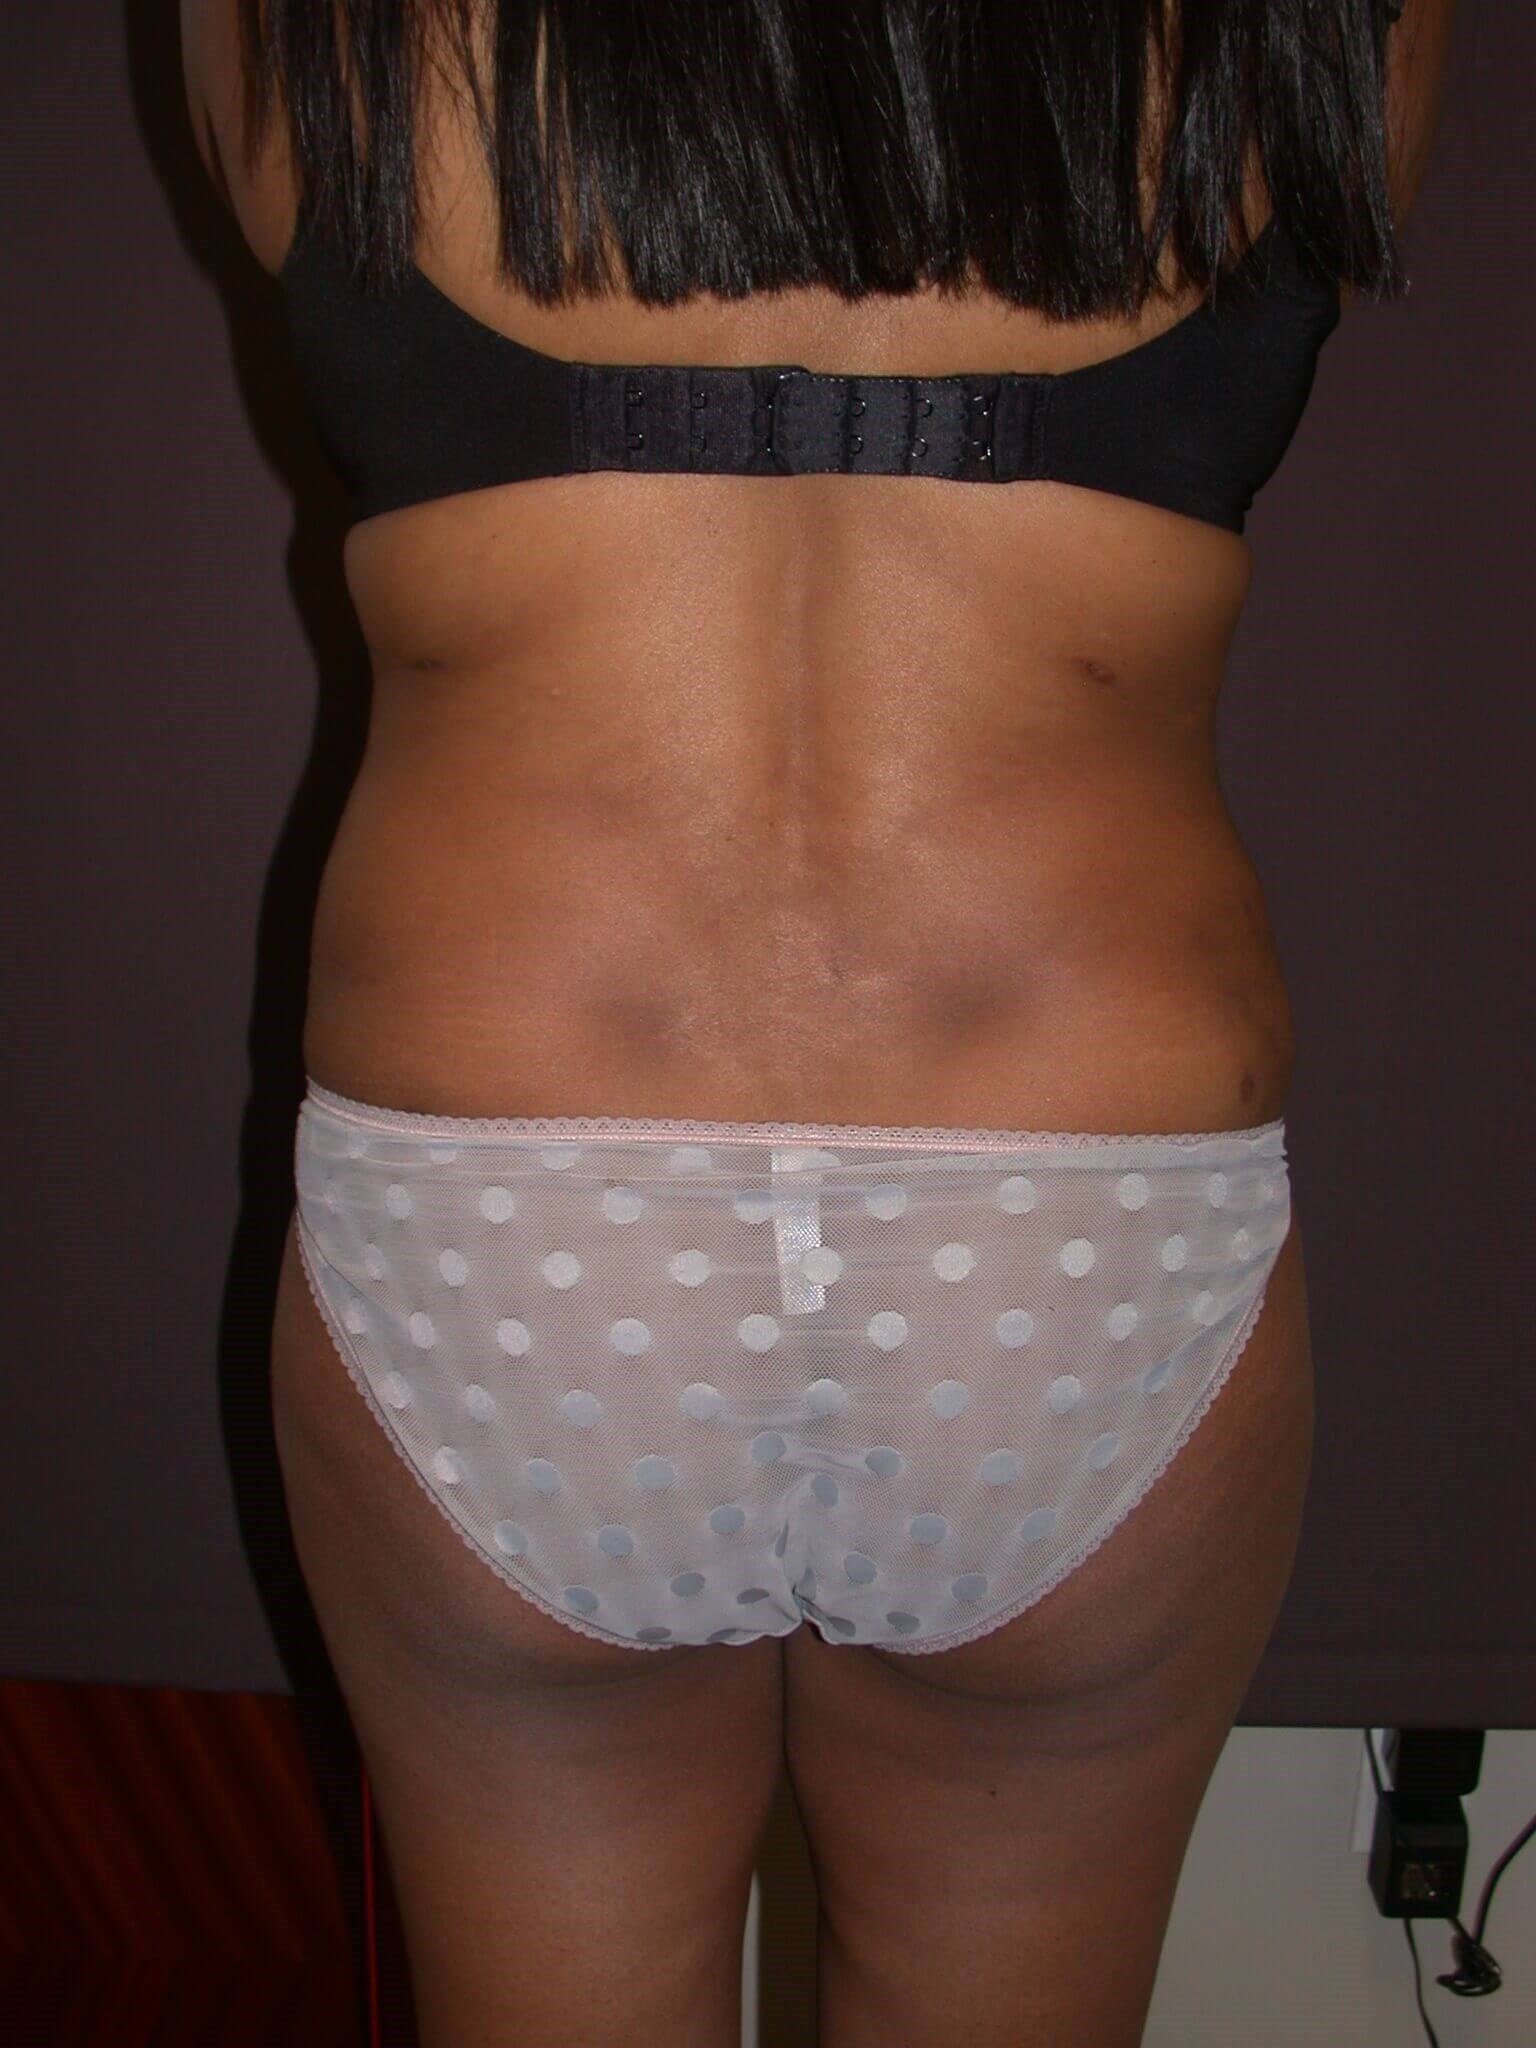 Abdominoplasty Back view After